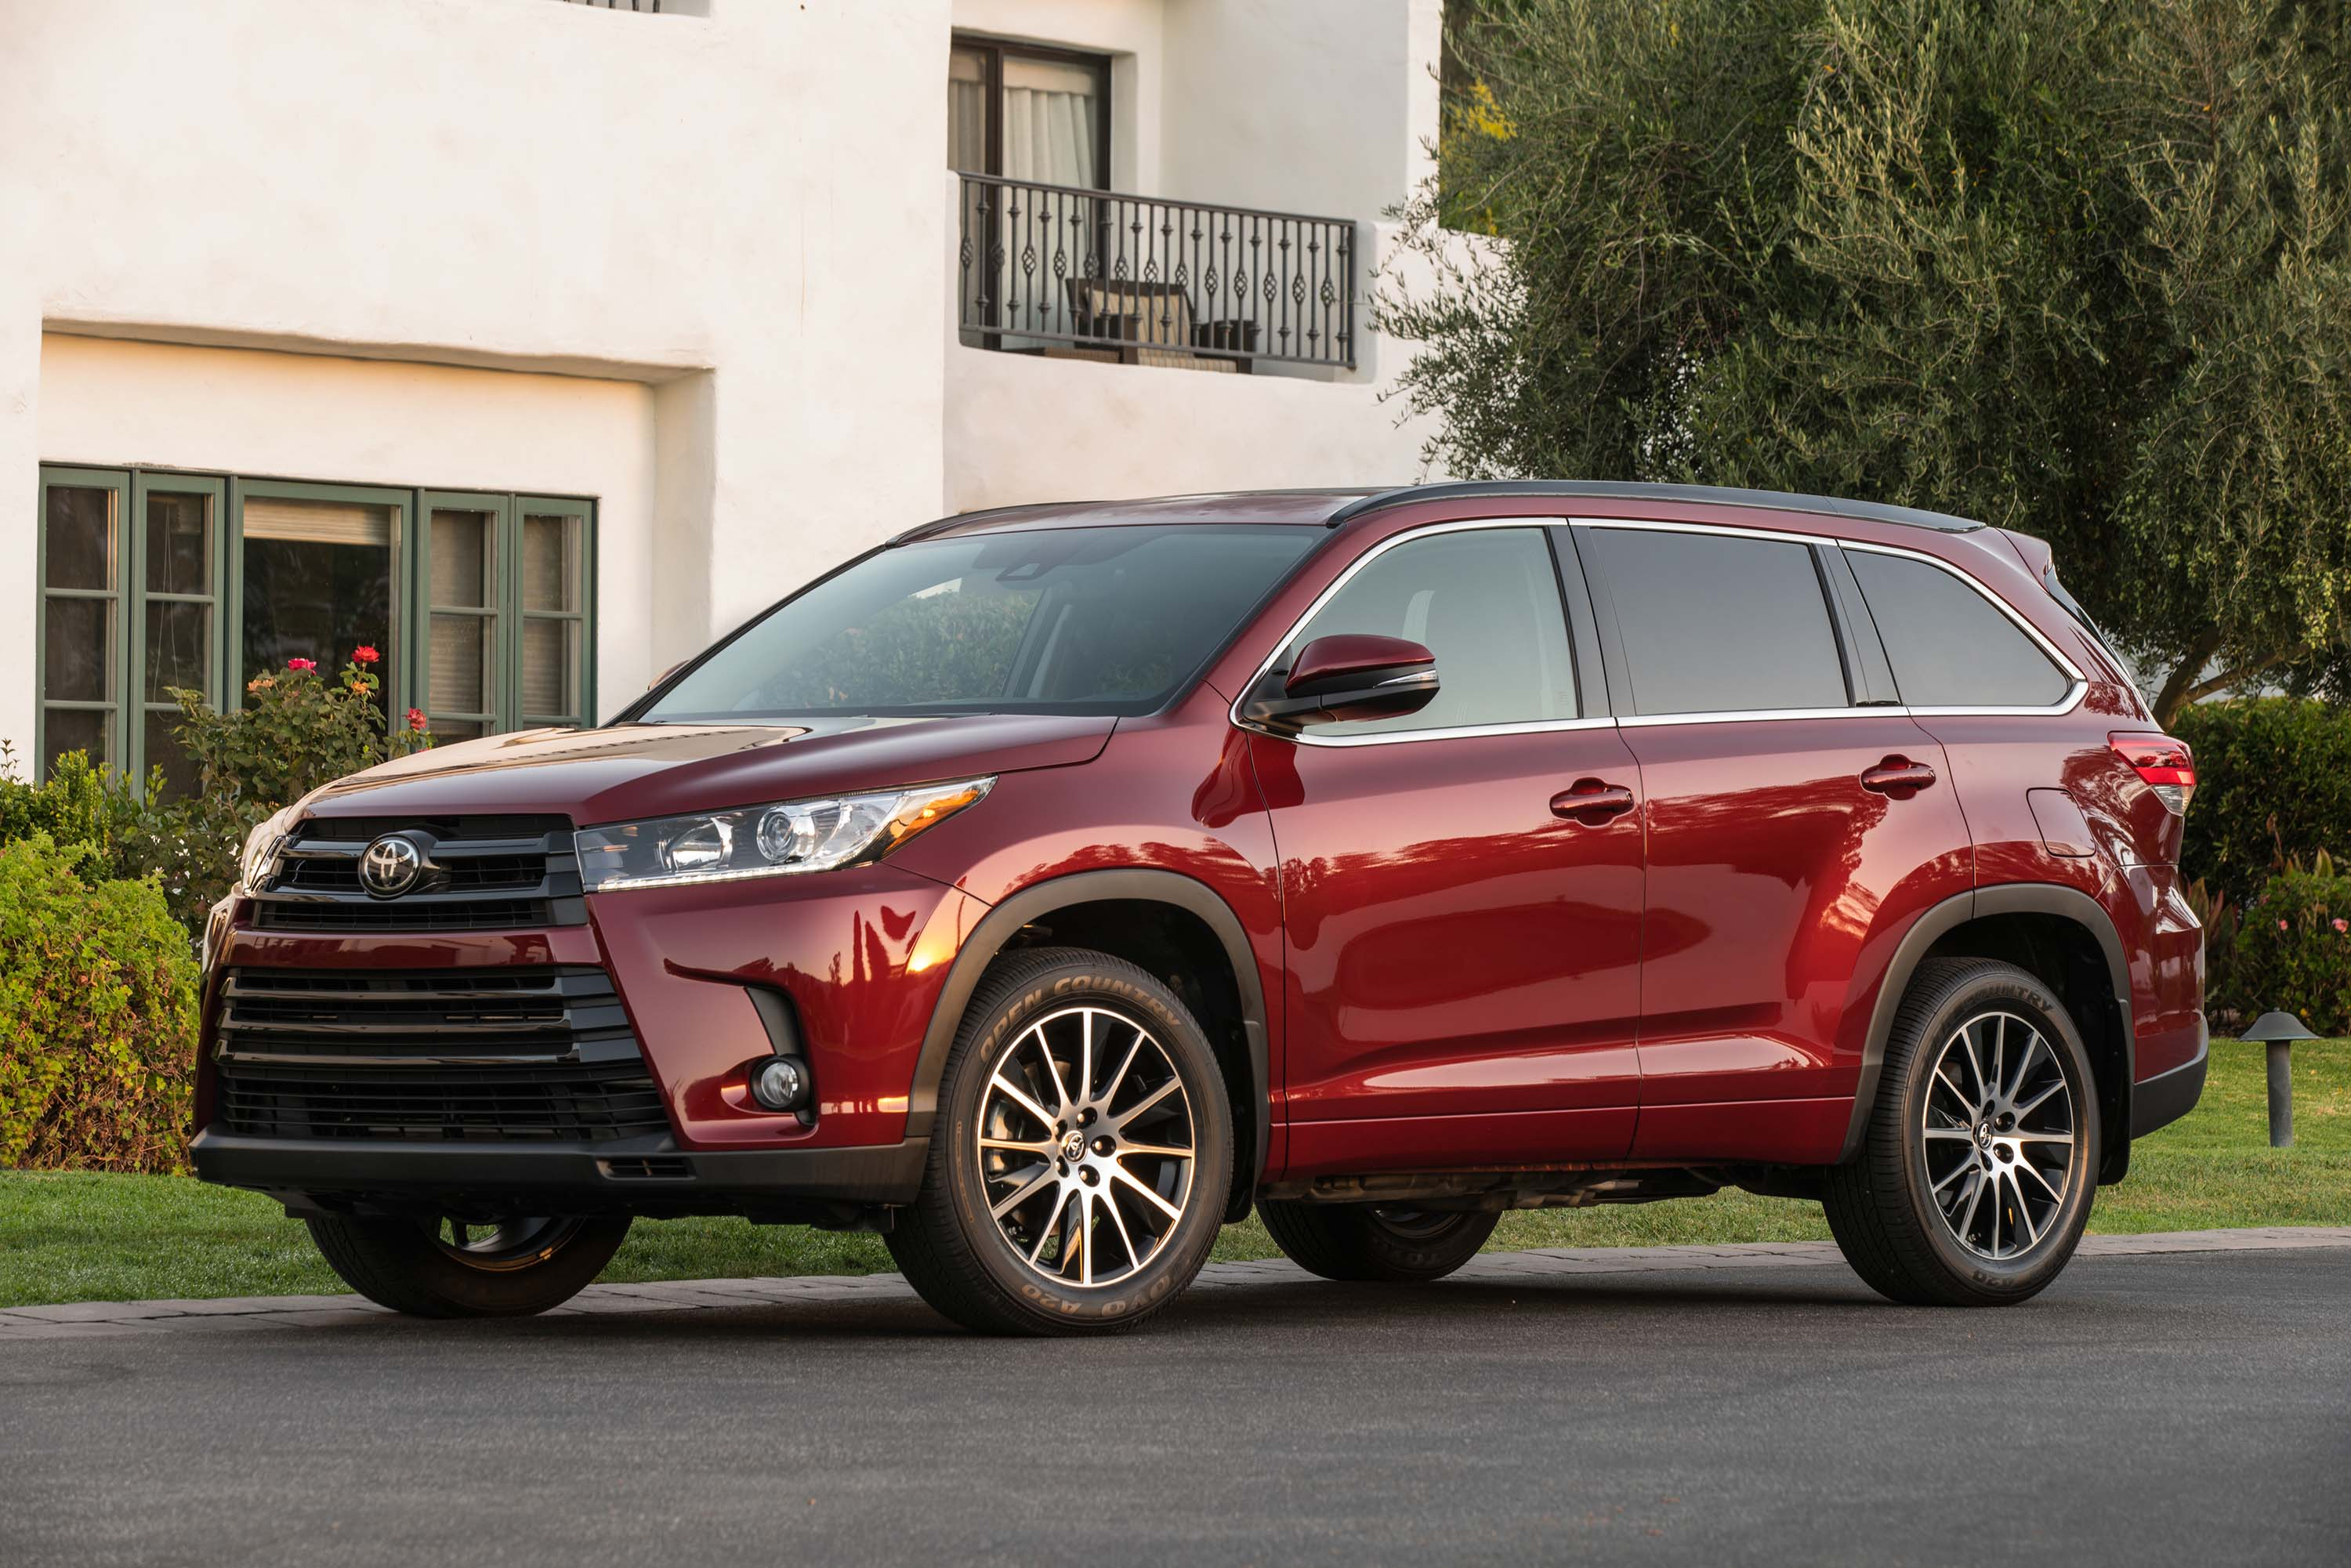 Red toyota highlander in front of a house